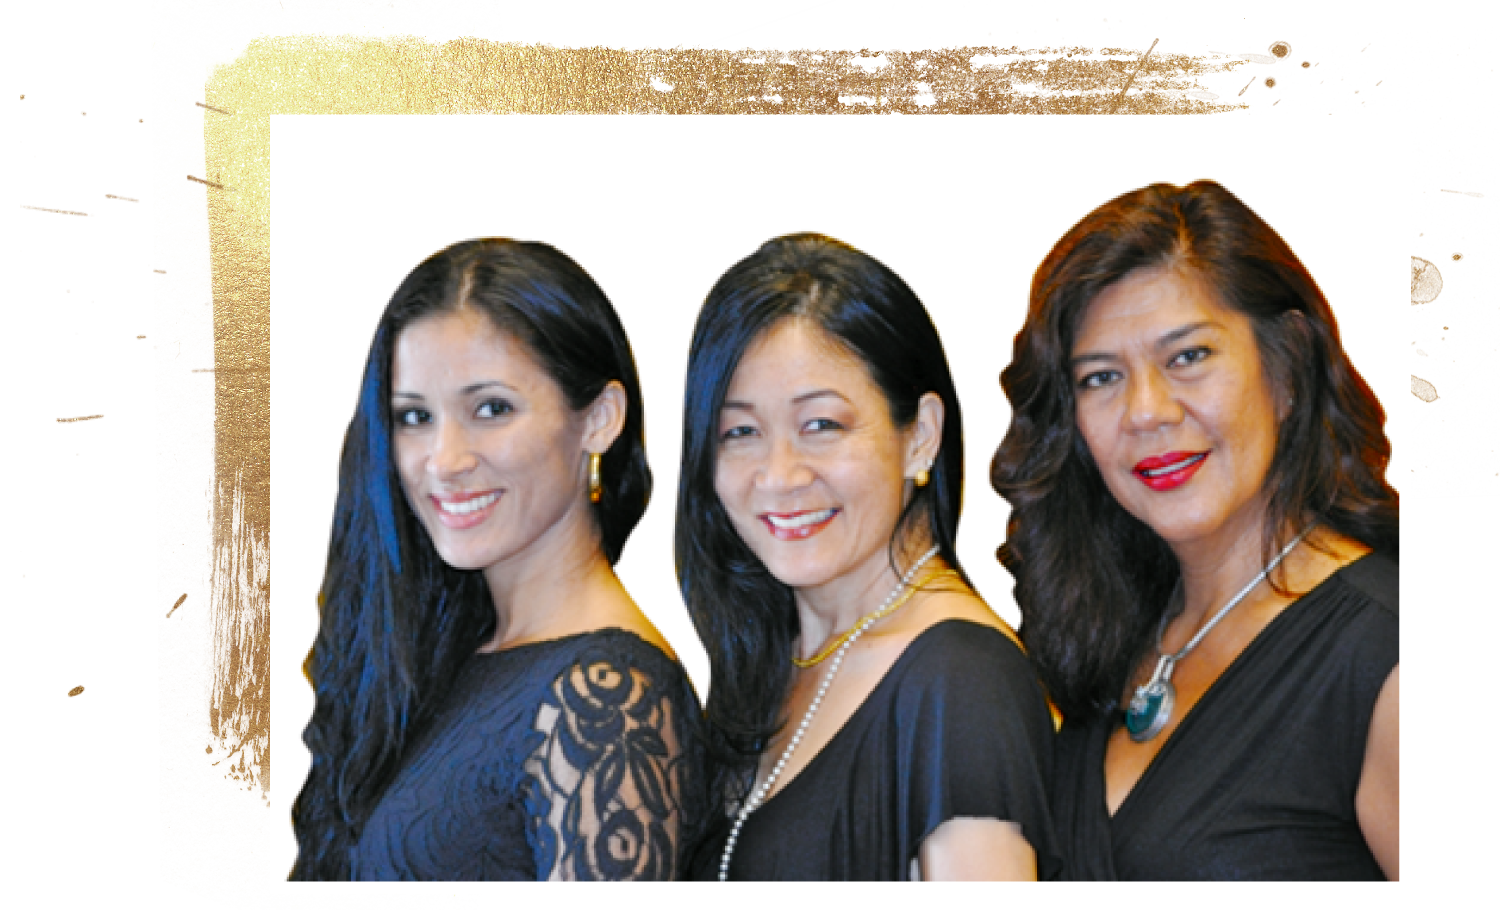 Meet The Gold Sistahs - We are local, BFFs and a women-run business open since 2011. We are active in our community, and are here to stay! We feel blessed to be able to help our community by providing GUARANTEED customer satisfaction. We really care! Our business operations reflect who we are and our strong roots in Hawaii.